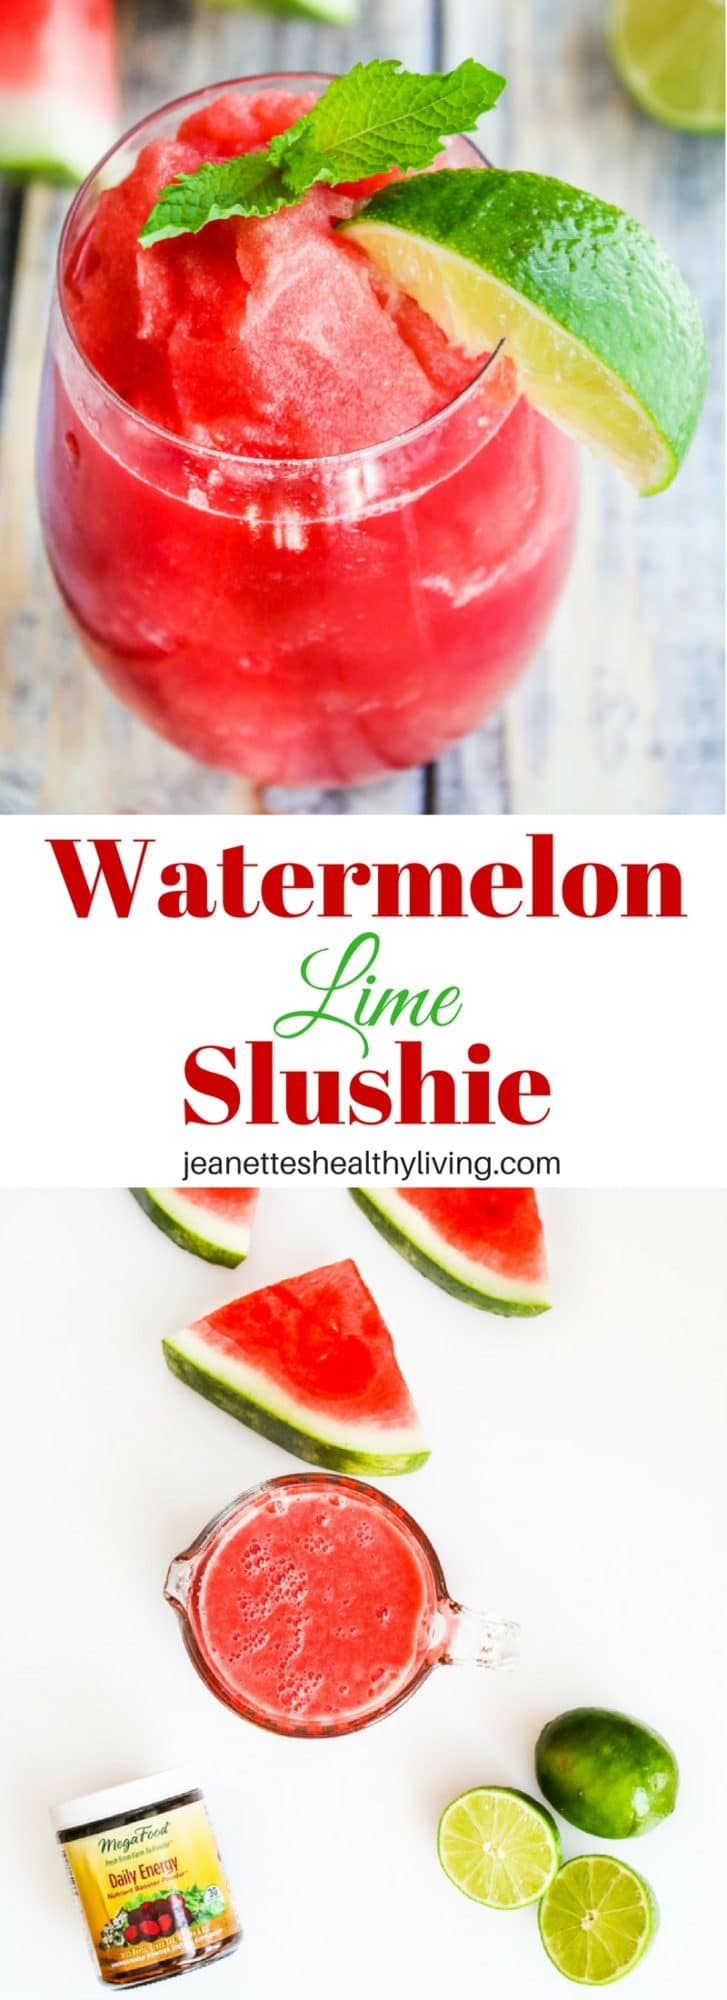 Watermelon Lime Slushie - just 3 ingredients! Refreshing, nutritious and stress reducing